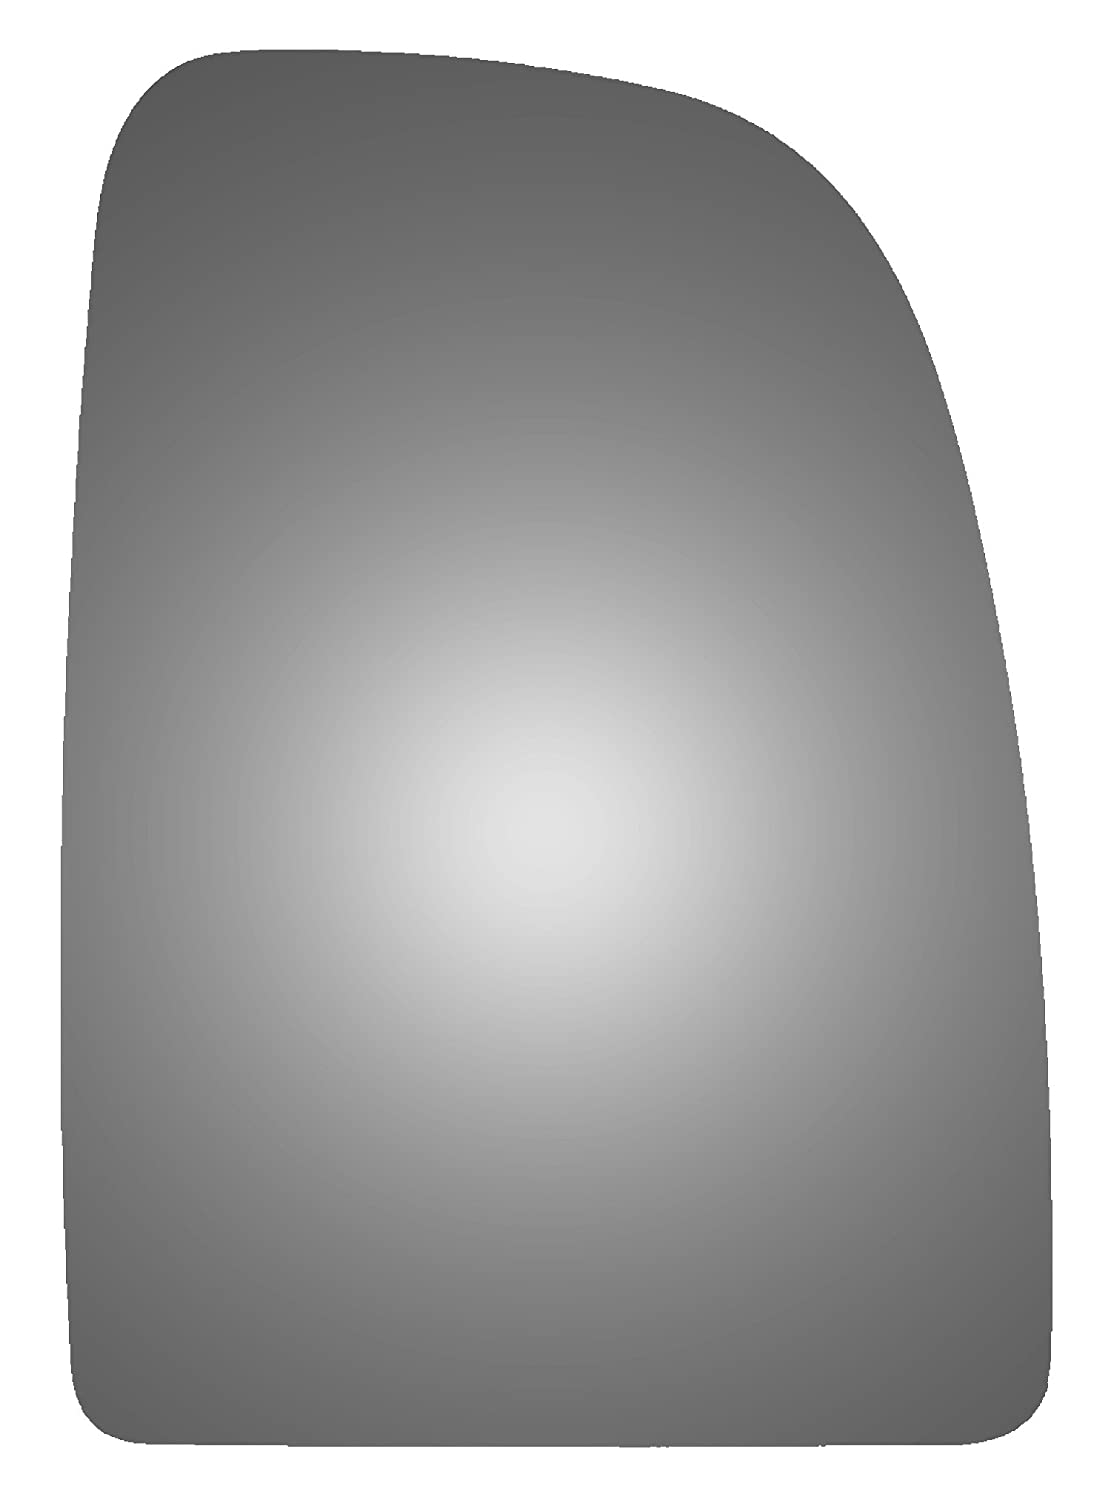 2014 RAM PROMASTER Upper Convex Passenger Side Replacement Mirror Glass Burco